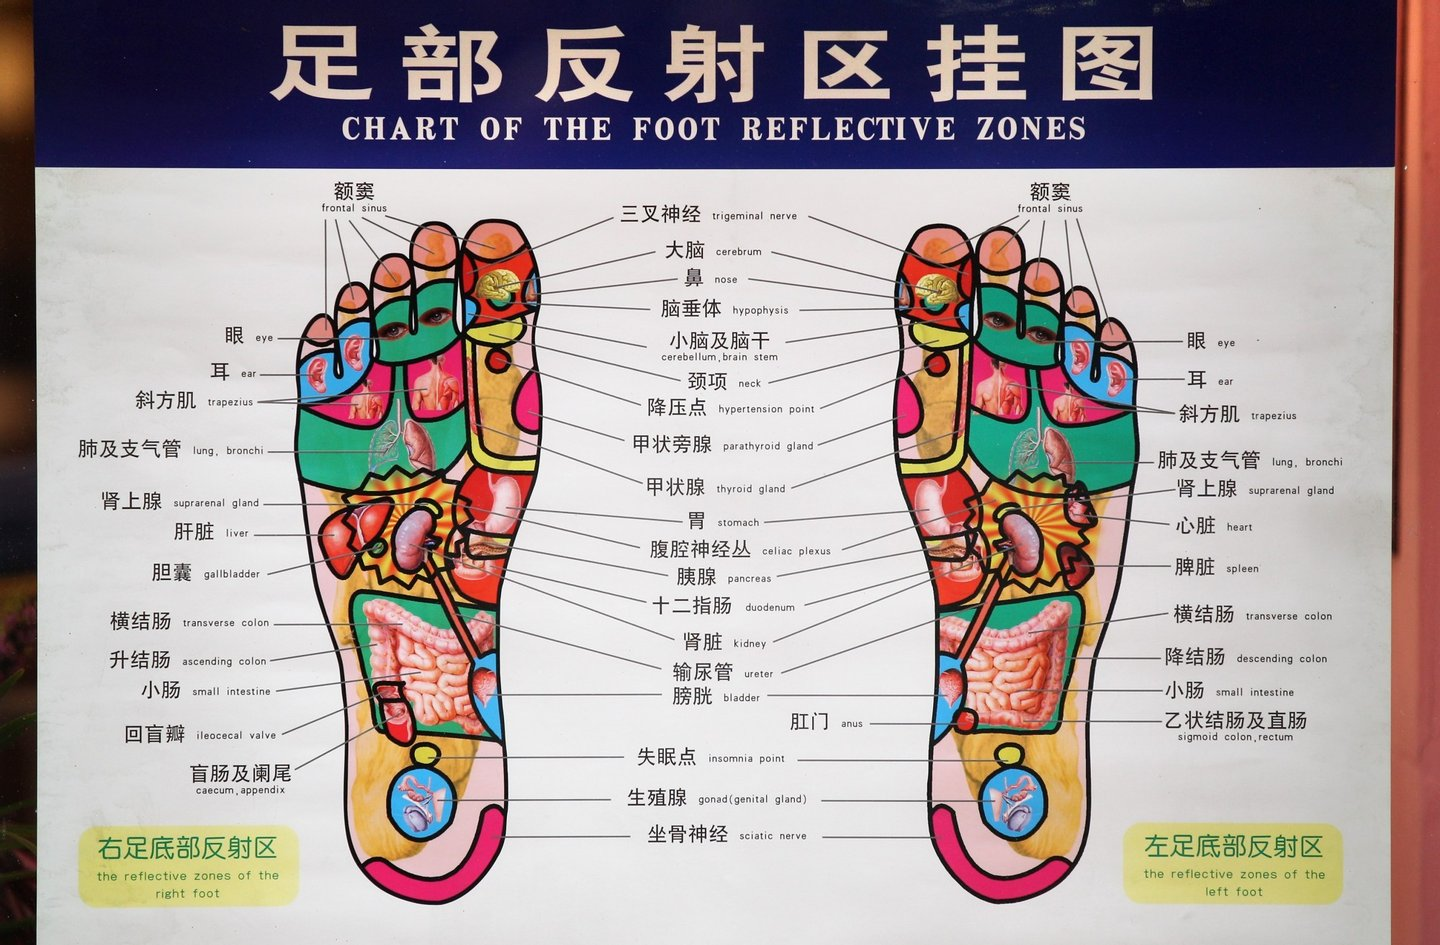 LONDON, ENGLAND - FEBRUARY 01:  The reflexology zones of the foot are displayed in the window of a medical store in the Chinatown area of Westminster on February 1, 2011 in London, England. The Chinese community in London is preparing to celebrate the Chinese New Year of the Rabbit on February 3, 2011.   (Photo by Oli Scarff/Getty Images)